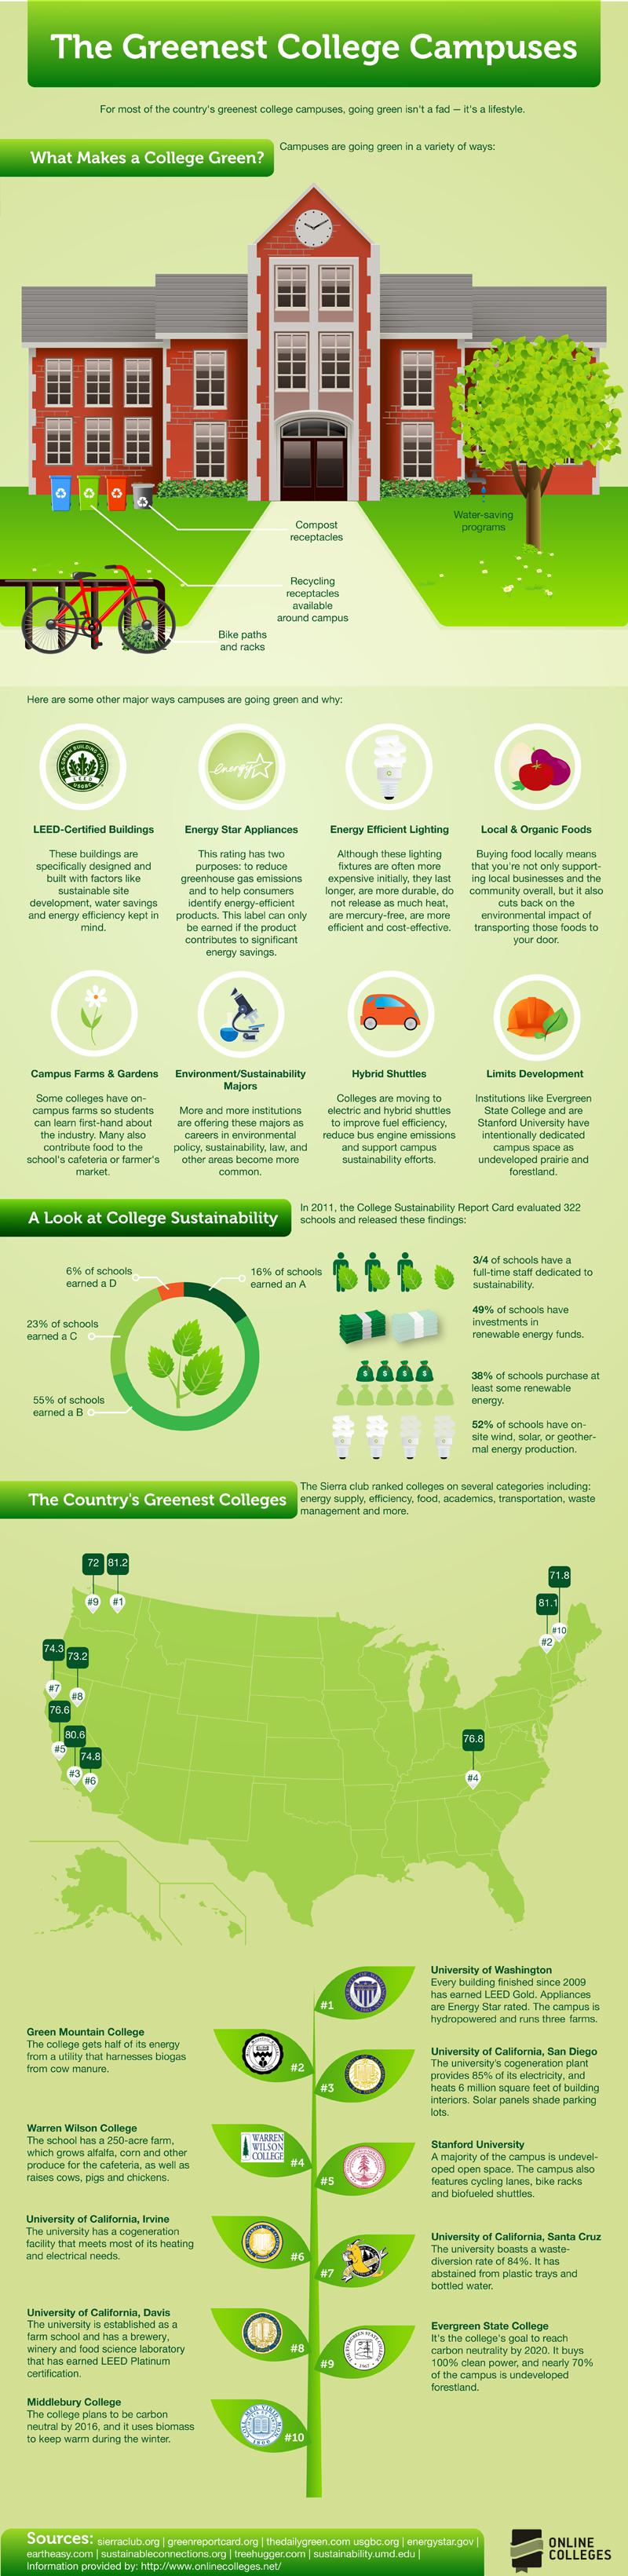 Are More Colleges Going Green